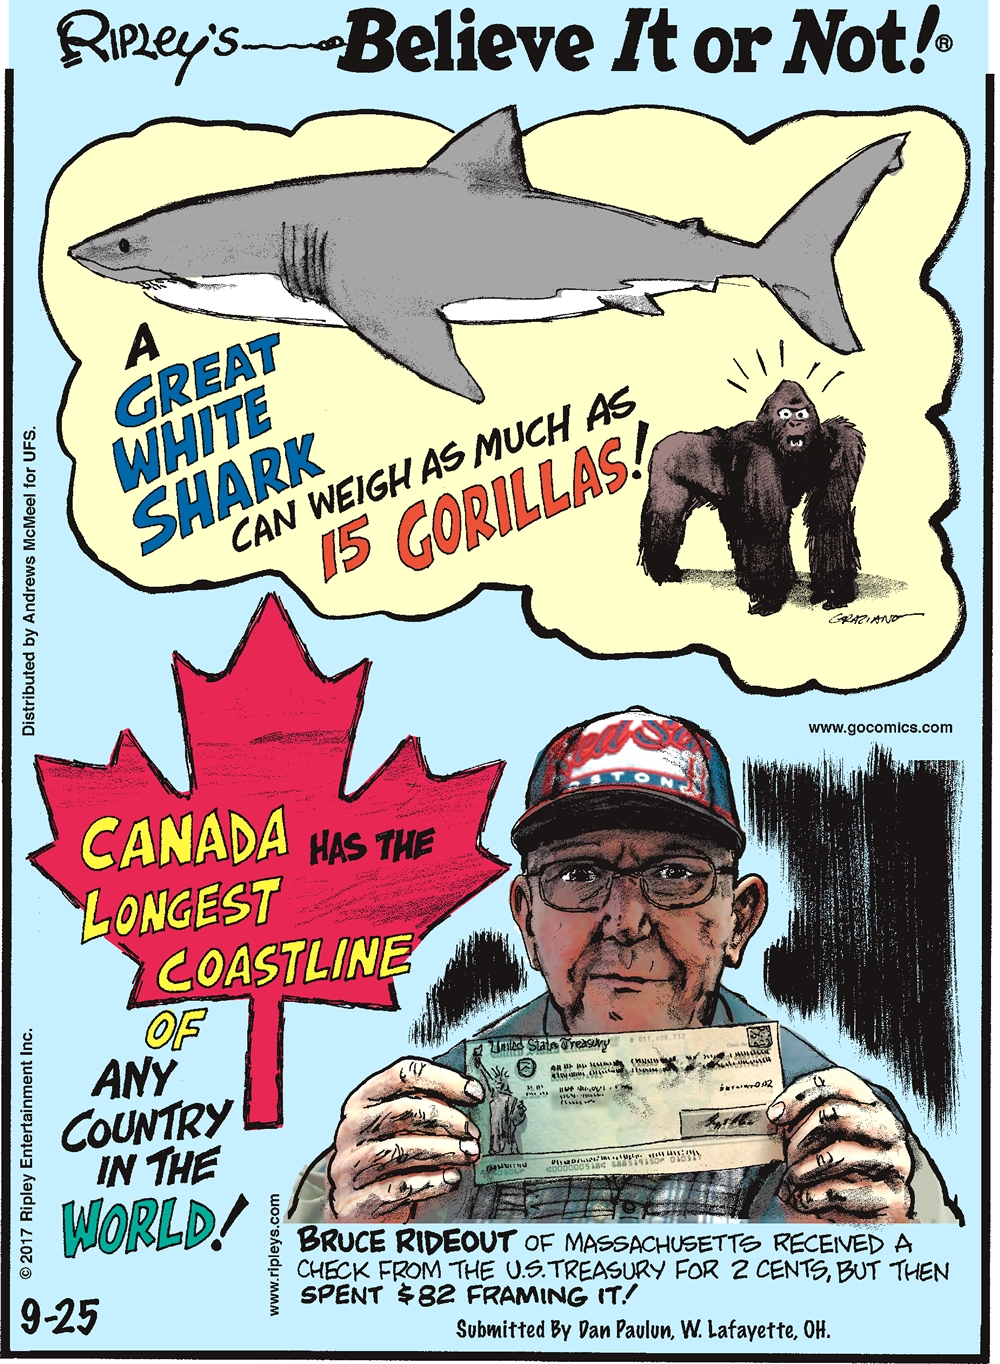 A great white shark can weigh as much as 15 gorillas!-------------------- Canada has the longest coastline of any county in the world!-------------------- Bruce Rideout of Massachusetts received a check from the U.S. Treasure for 2 cents, but then spent $82 framing it! Submitted by Dan Paulun, W. Lafayette, OH.